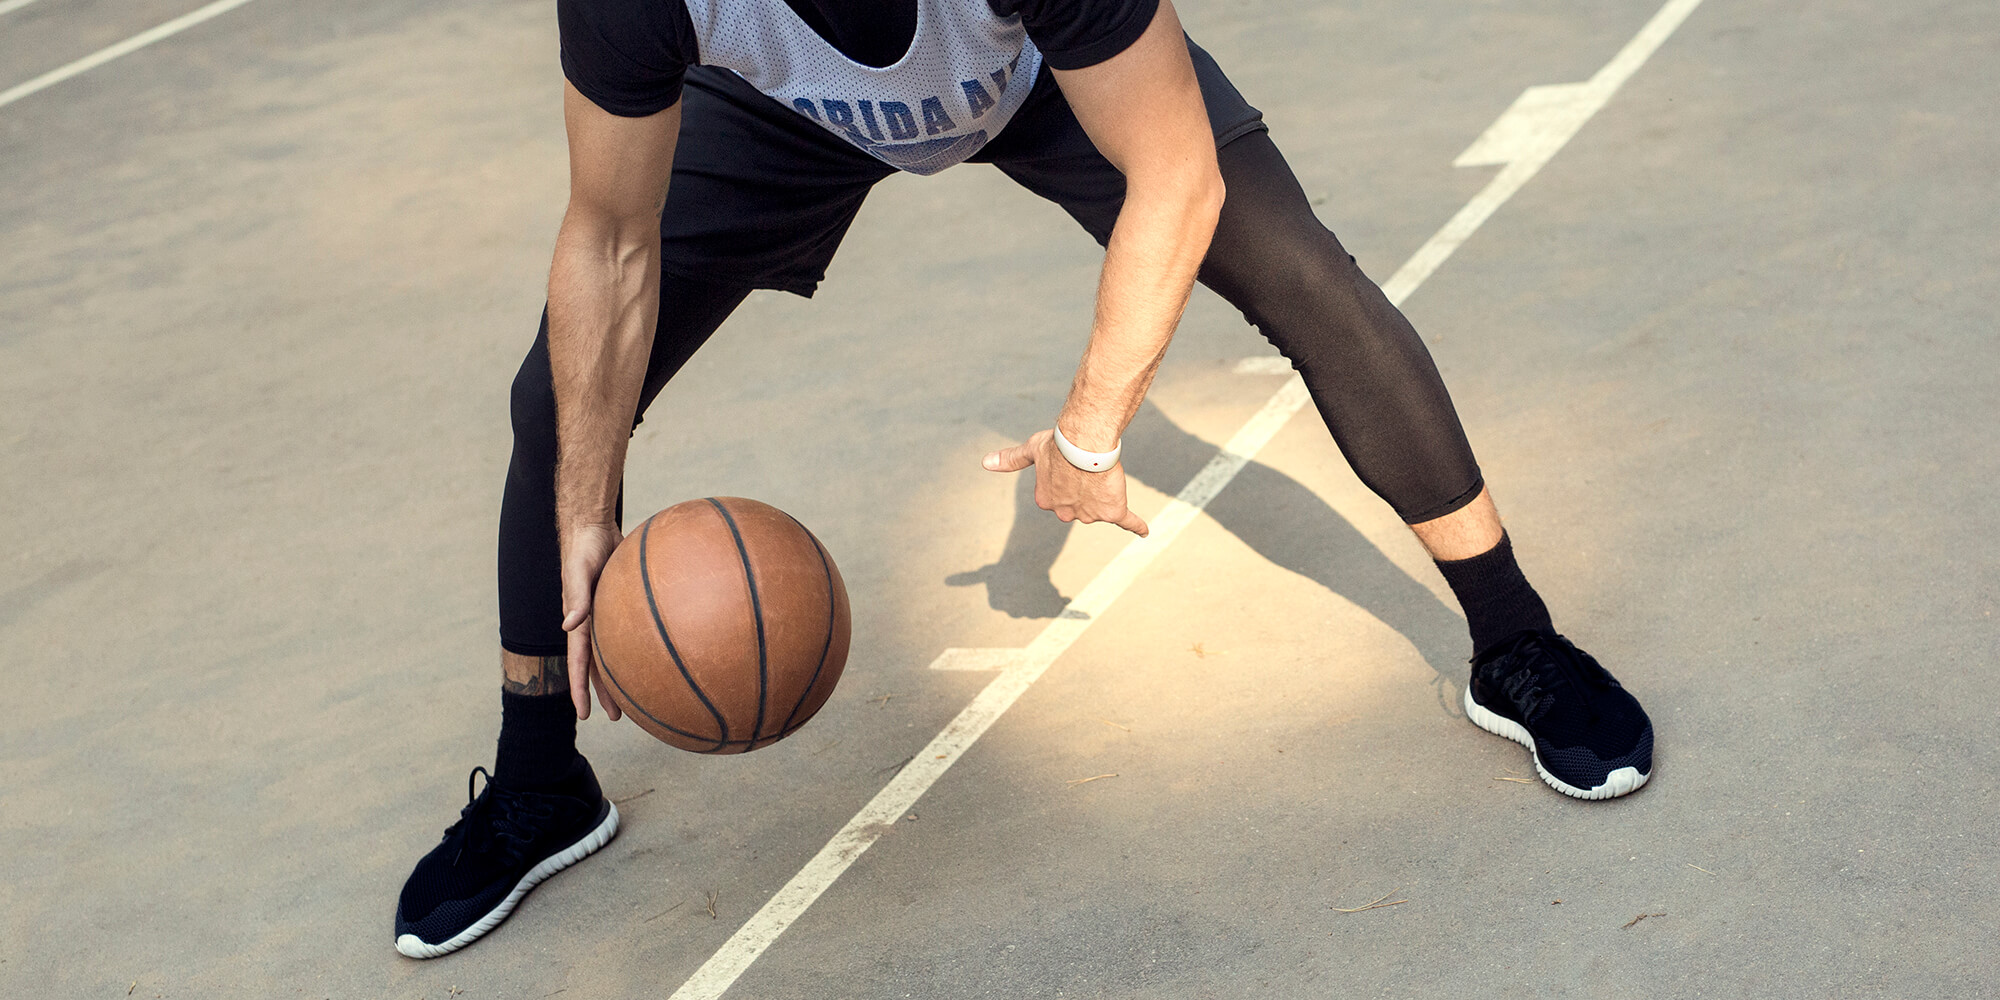 Man is playing basketball with the sleek AMBRIO bracelet